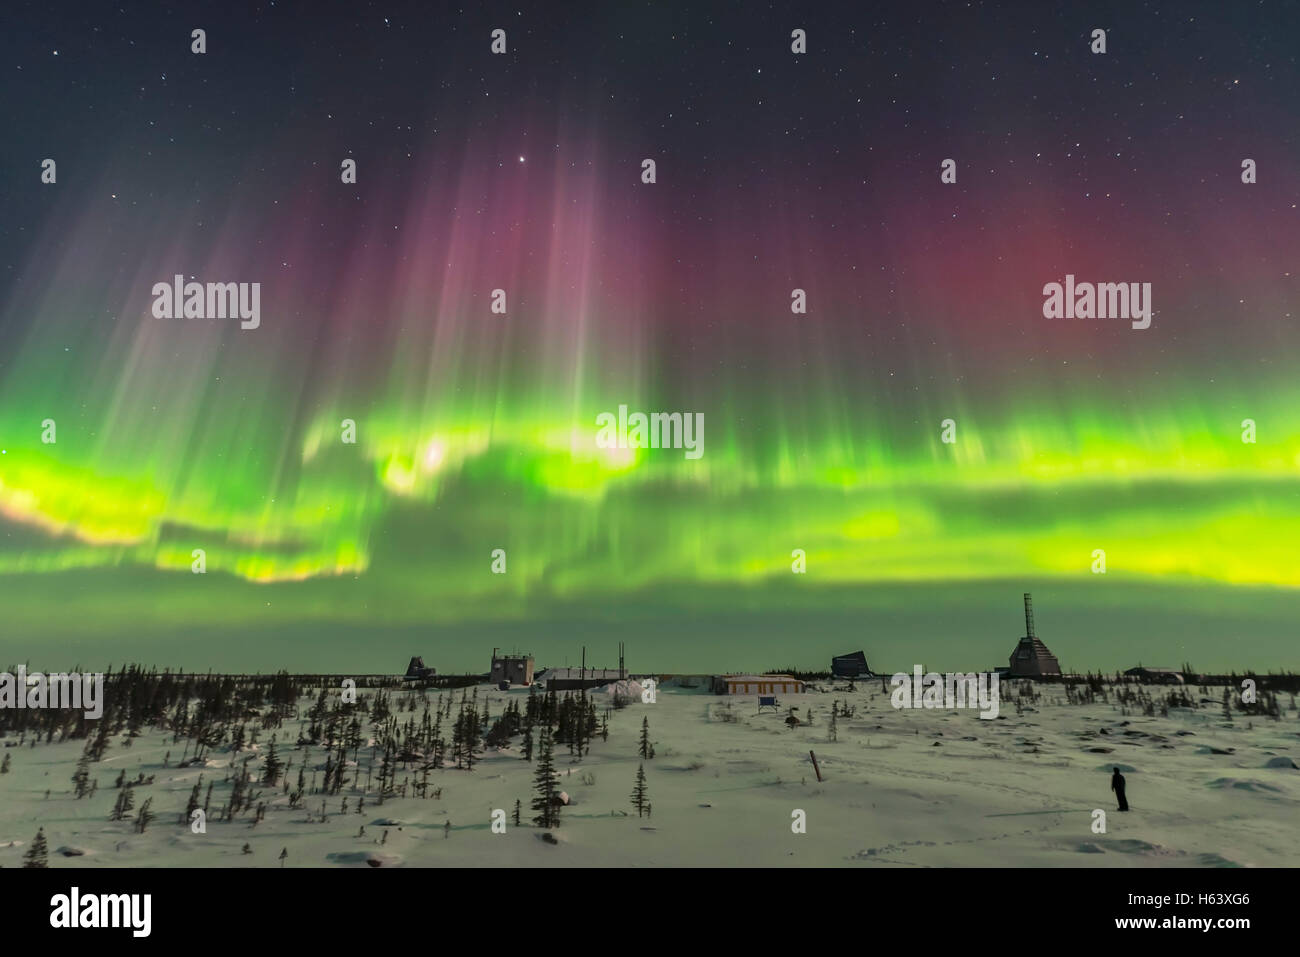 A superb display of aurora borealis seen on March 14, 2016 when it reached Level 5 storm levels. This was as the - Stock Image